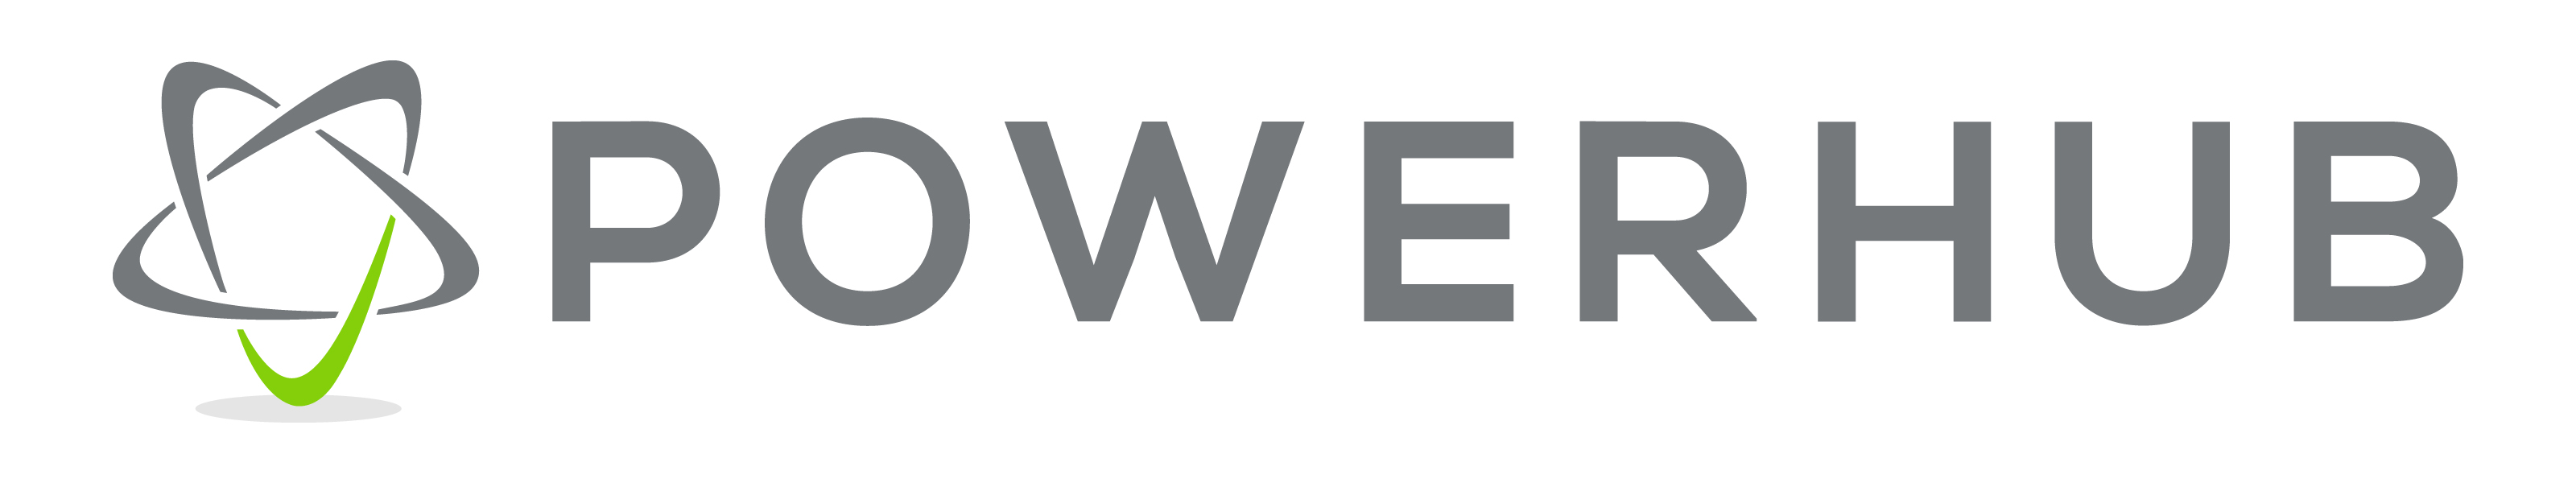 Powerhub logo